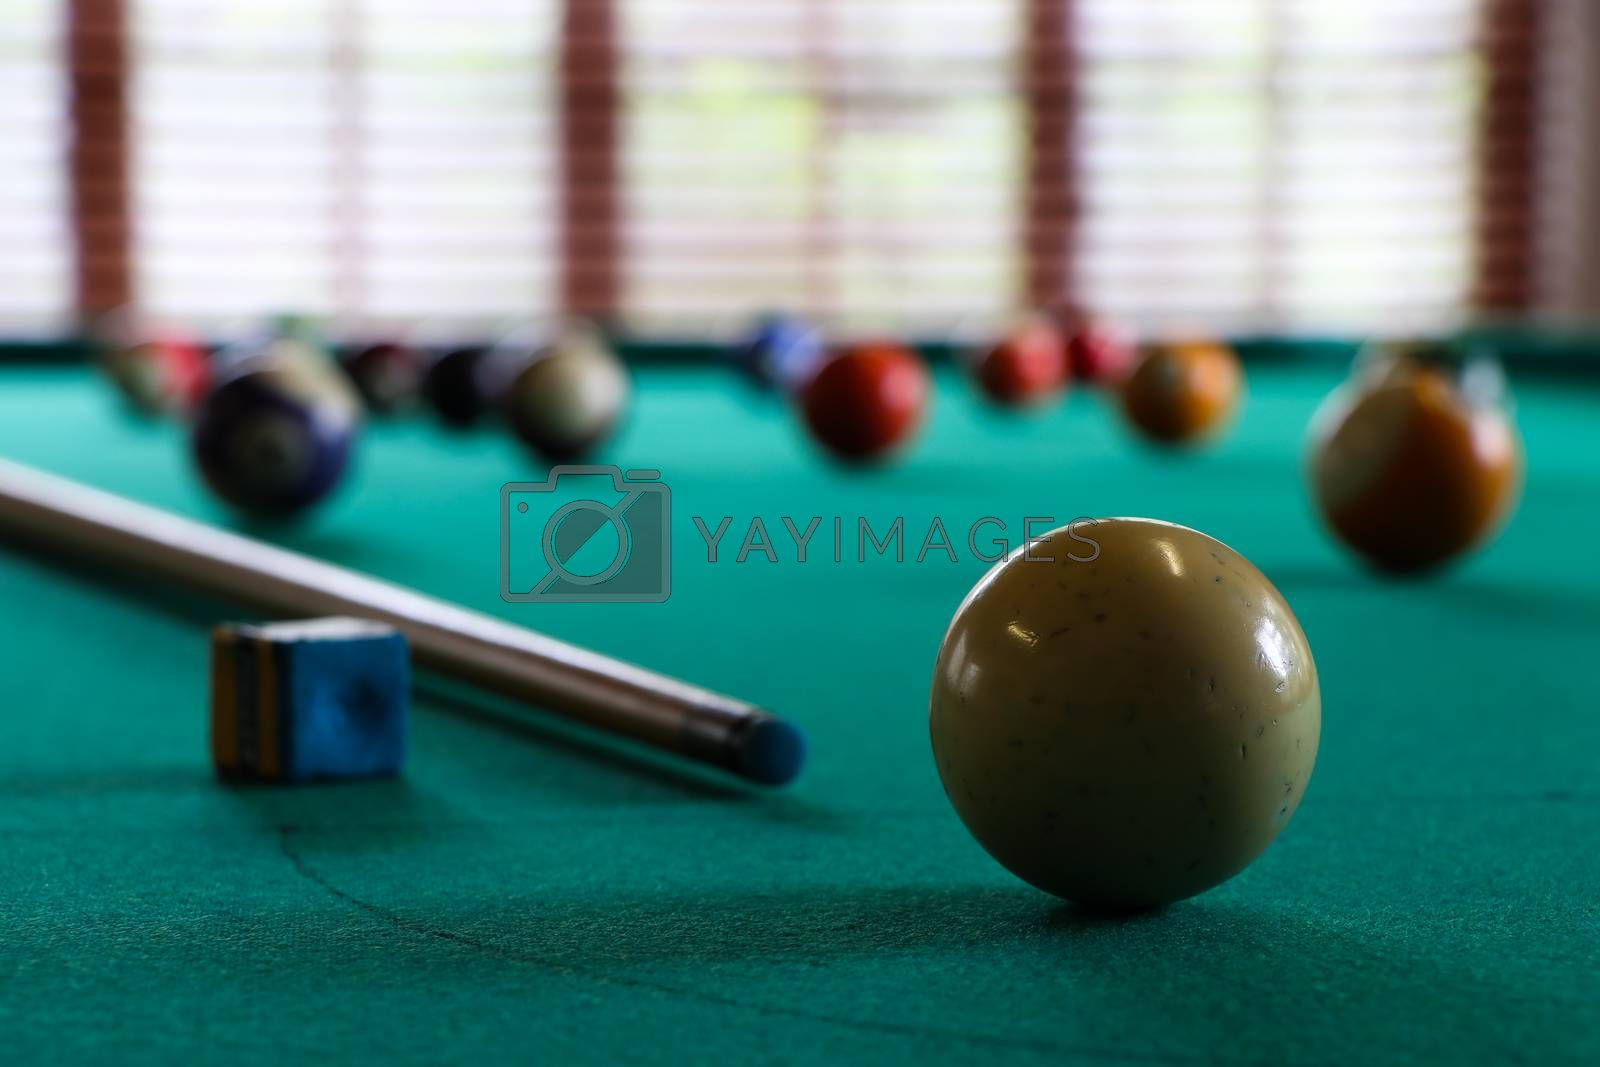 A white cue ball and stick with chalk block on green felt surface of a pool table, South Africa